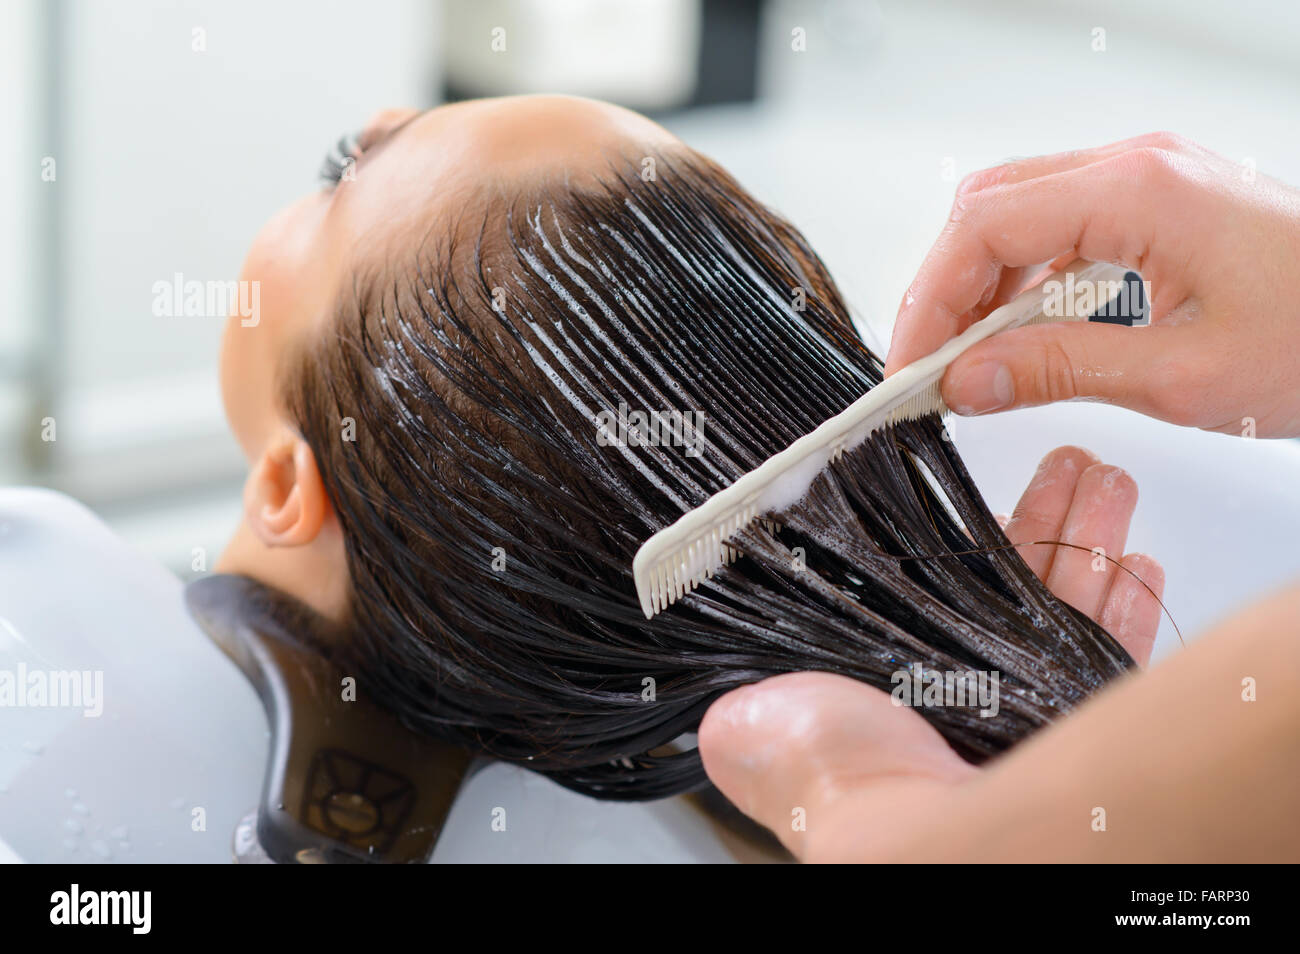 Clients hair is being renovated. - Stock Image